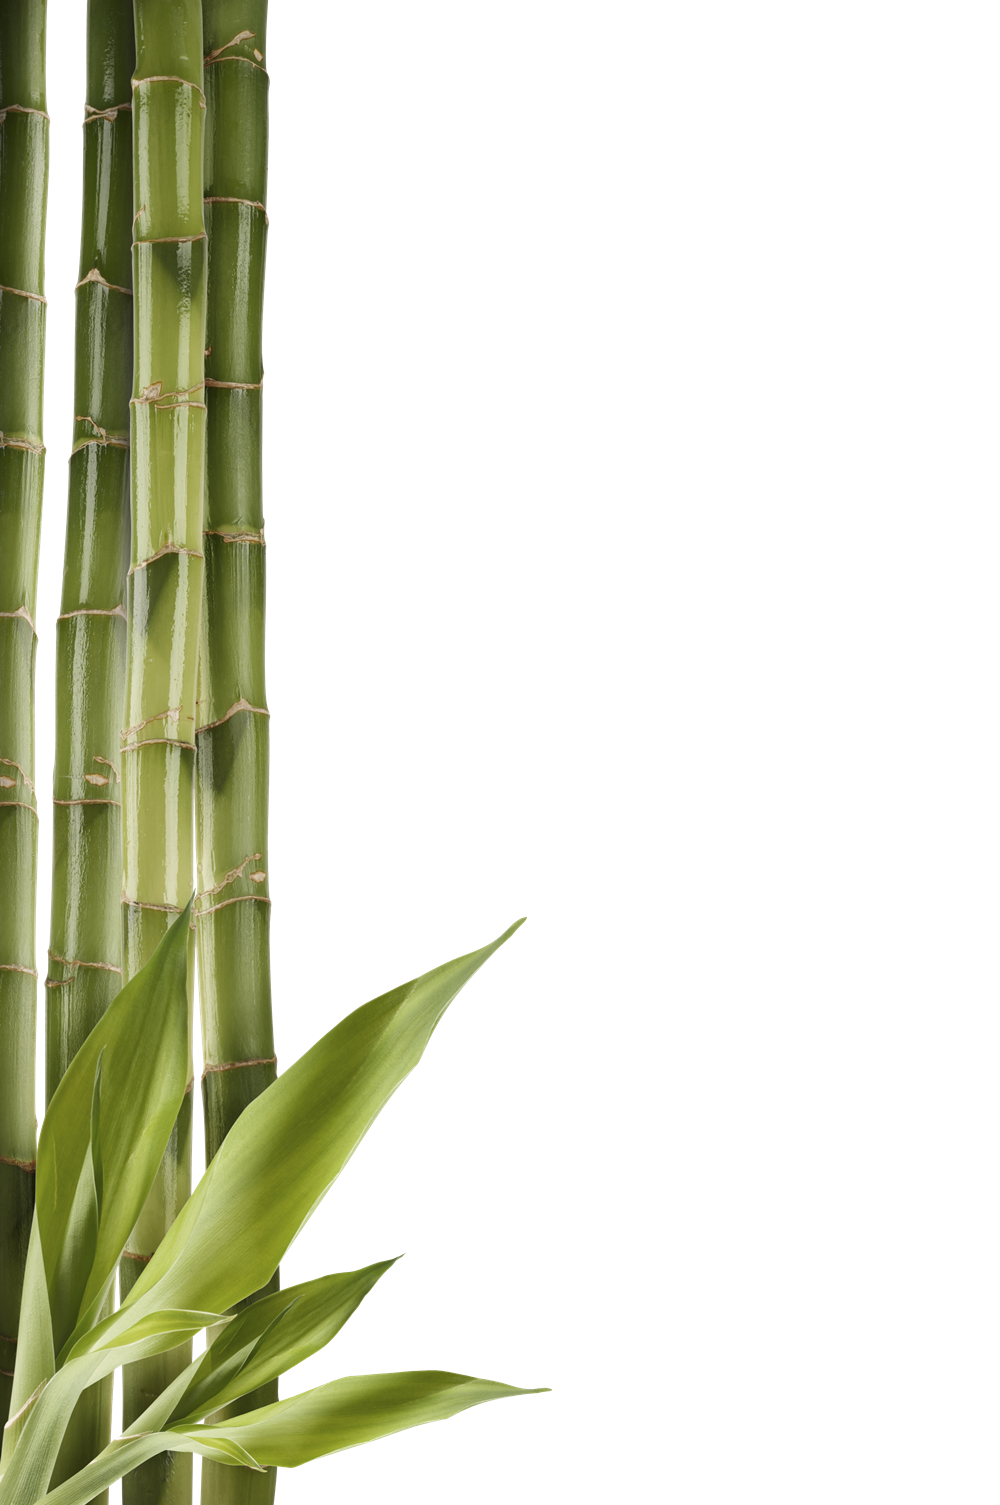 Download Images Bamboo Free image #40463